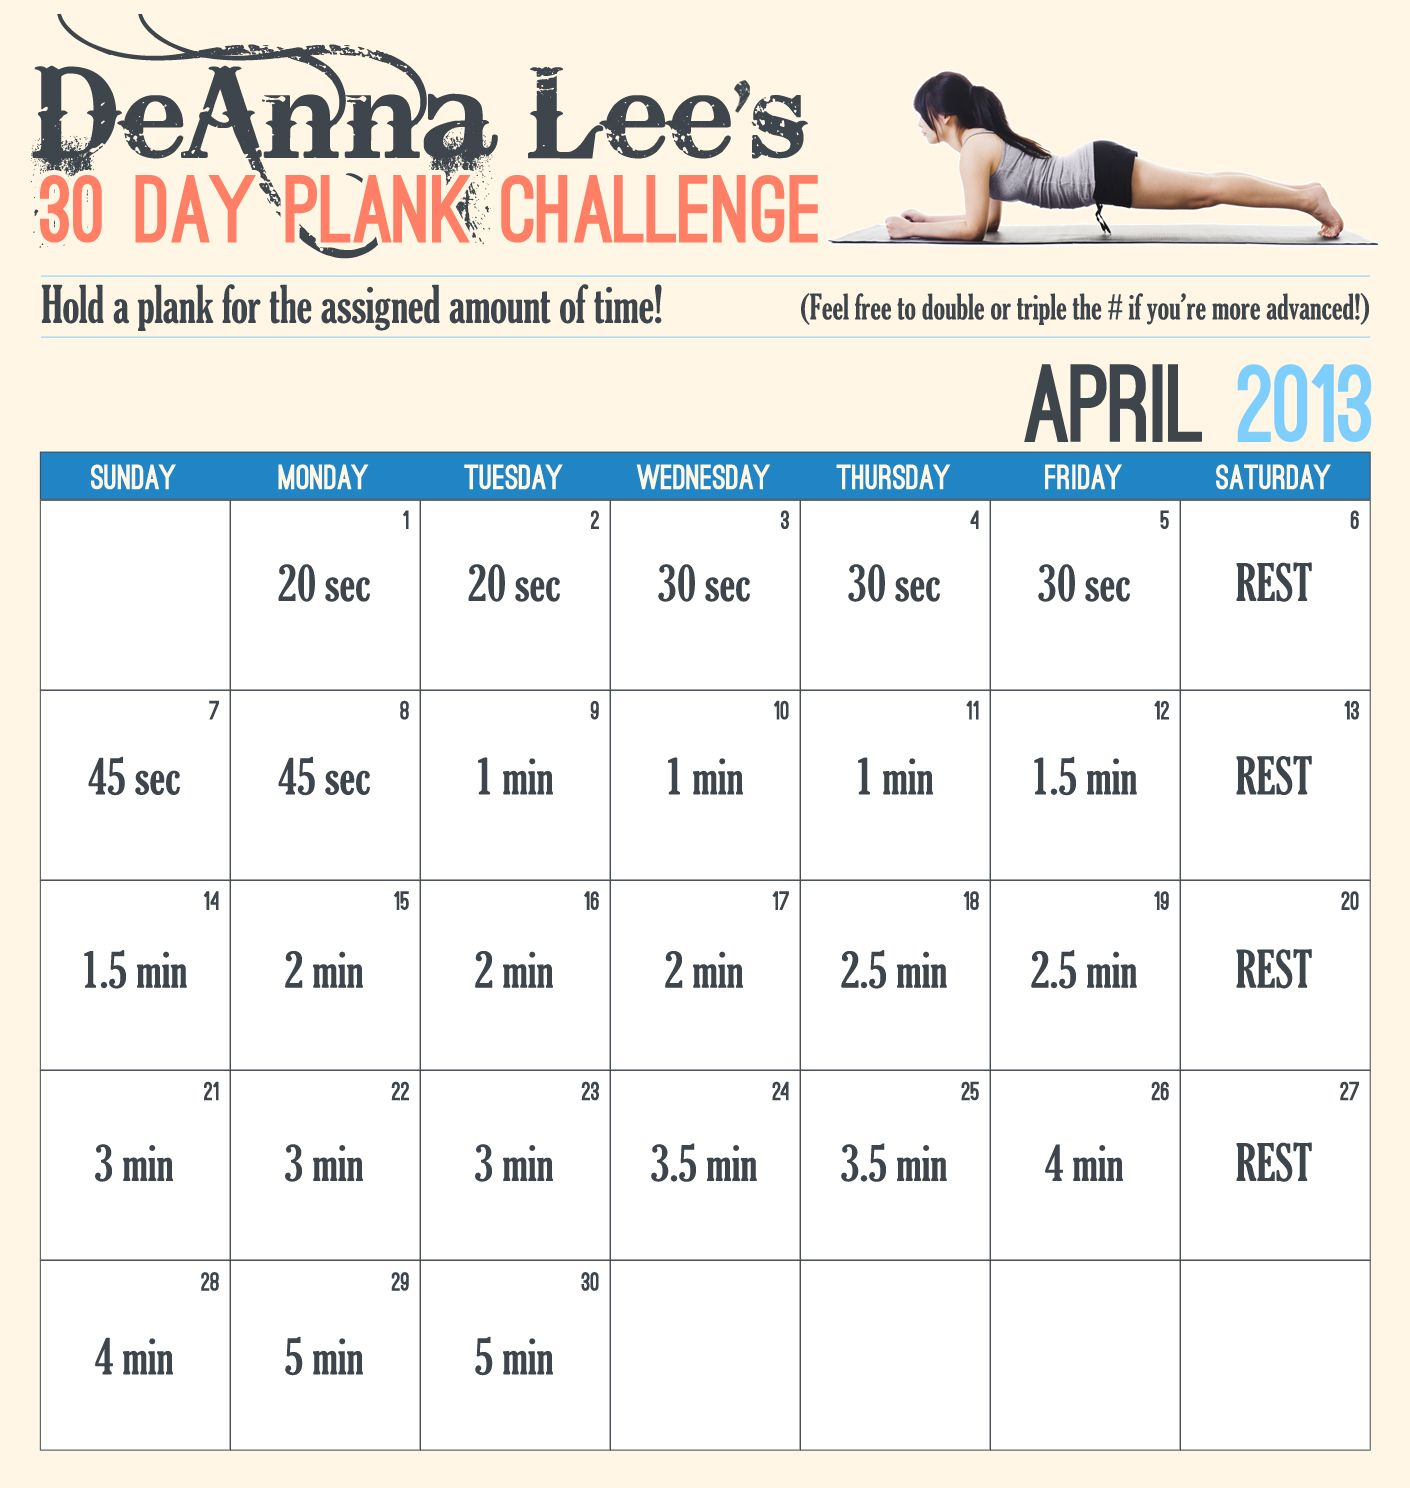 30 Day Plank Challenge  There is also a free app for this